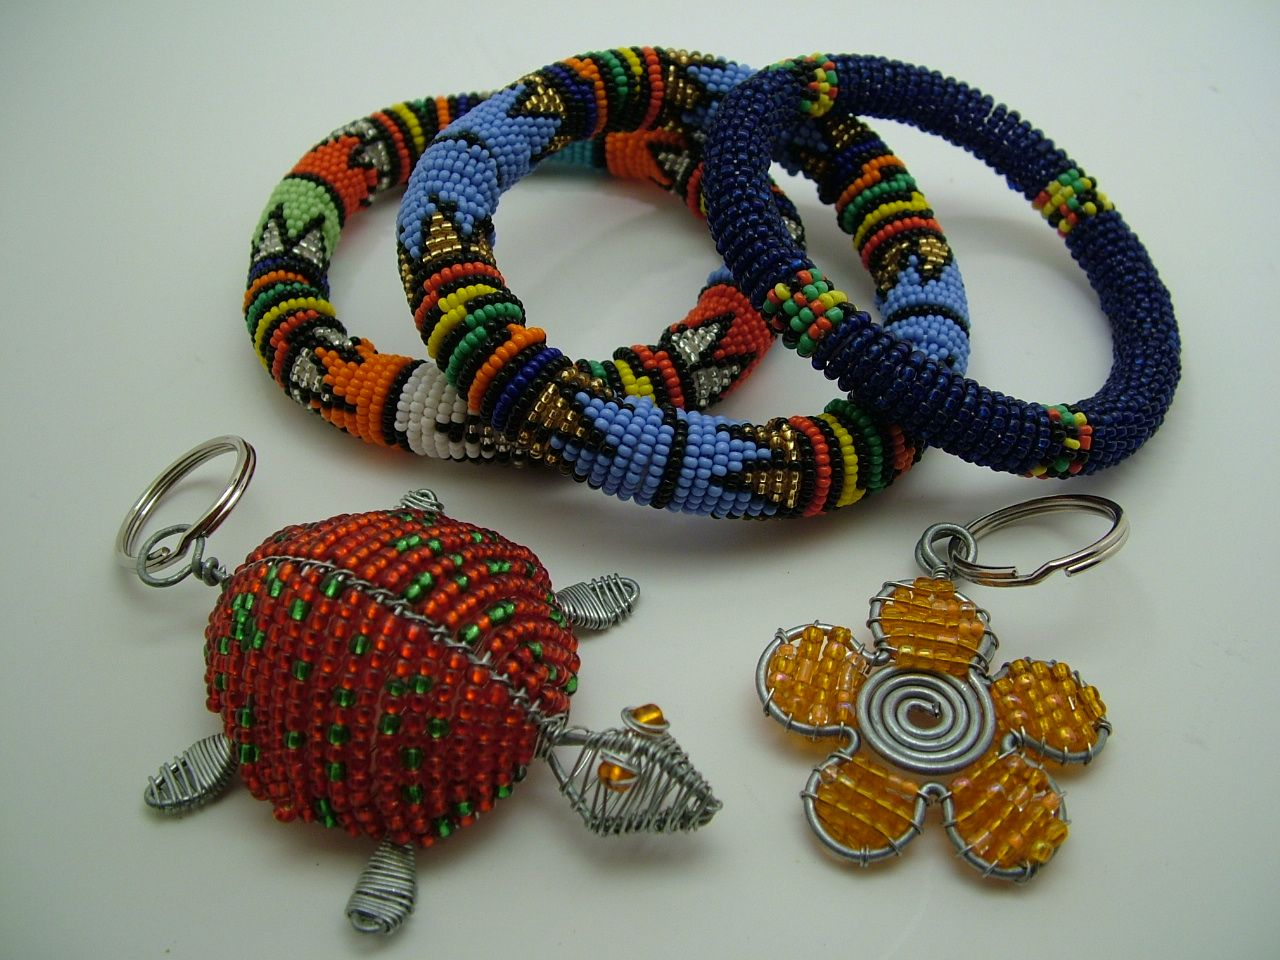 Native American BEADWORK - Beaded Lizard Web Designs | Jewelry ...